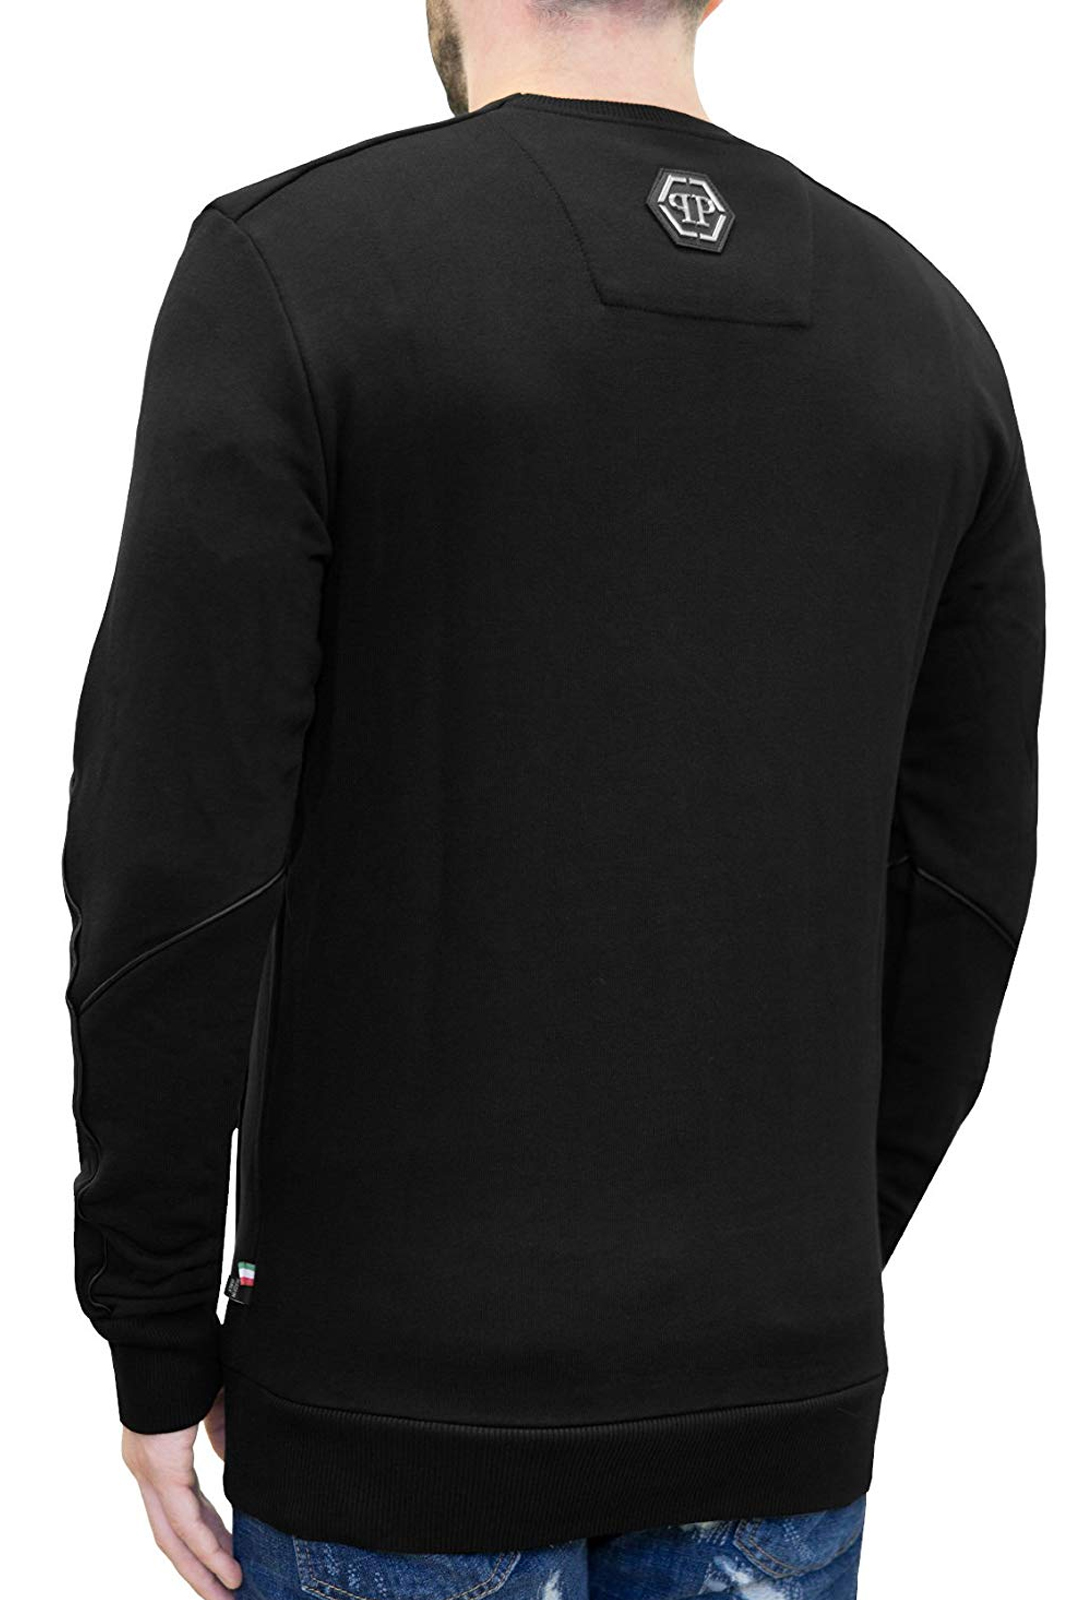 Sweatshirts  Philipp plein S18C MJO0263 SLEEPING 02 BLACK